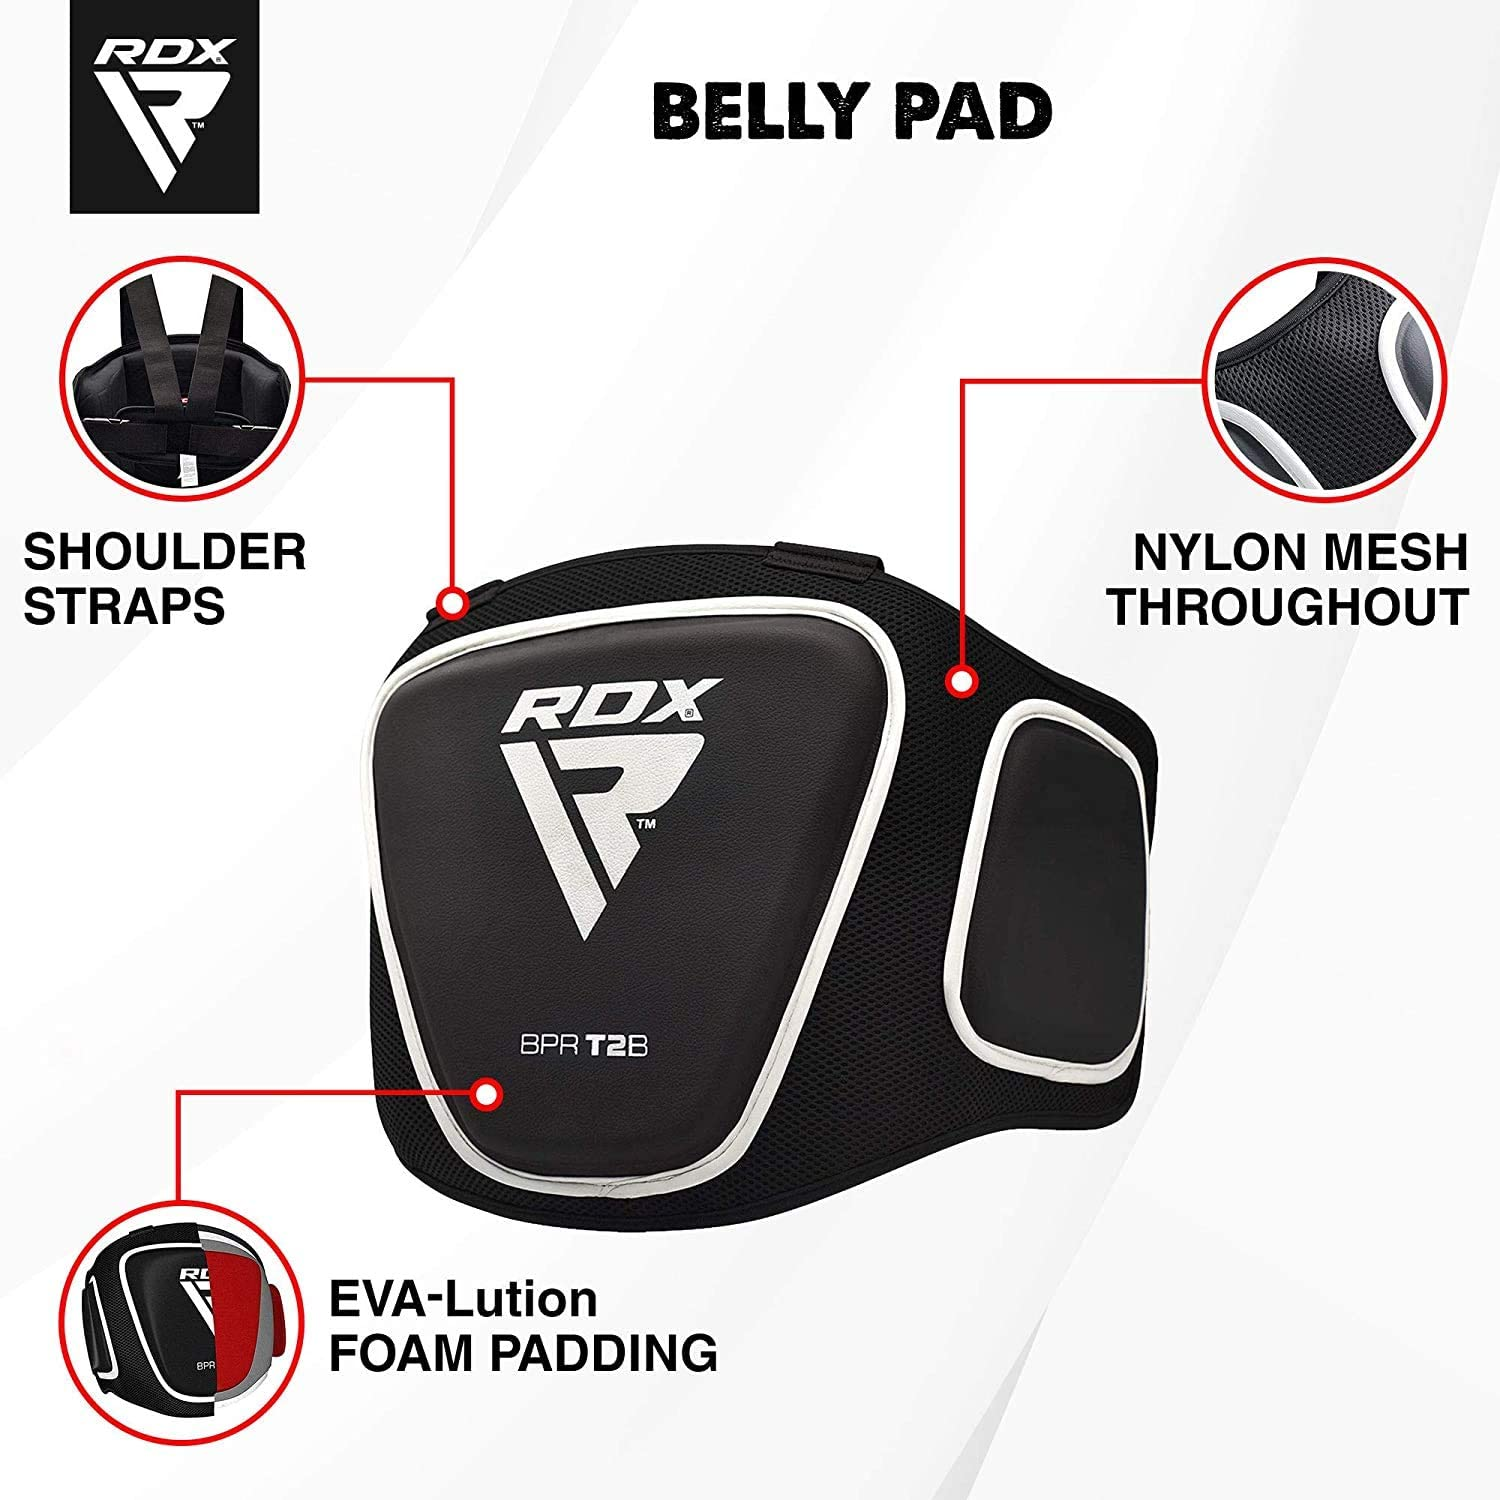 MAR INTERNATIONAL Pro Muay Thai Boxing MMA Training Body Protector Belly Pad Training Aid Belly targets body shield belly guard striking shield